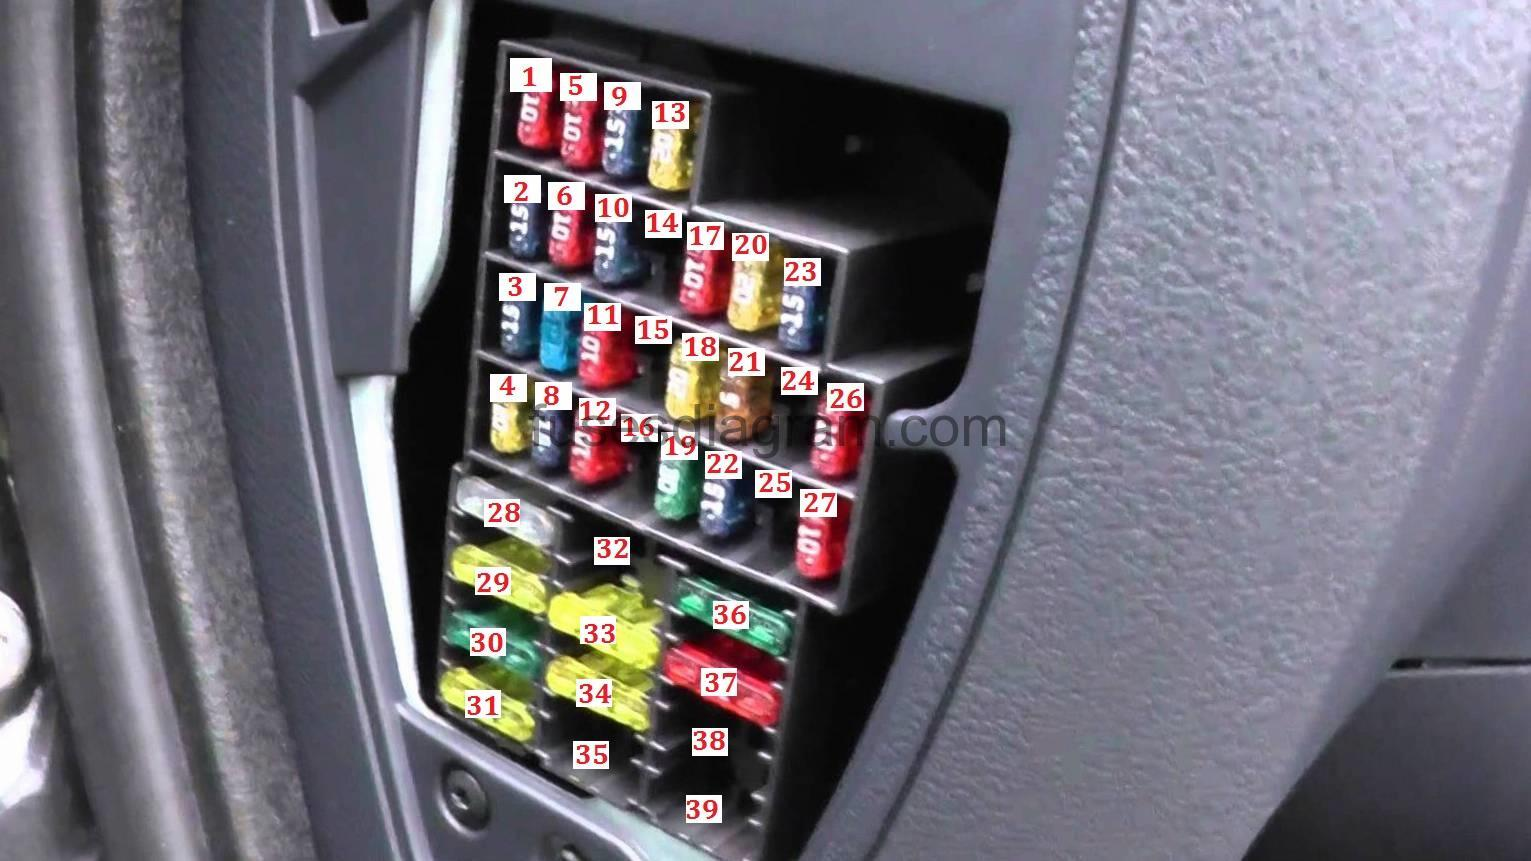 fuse box in renault clio auto electrical wiring diagram bmw 5 series fuse  box fuse box